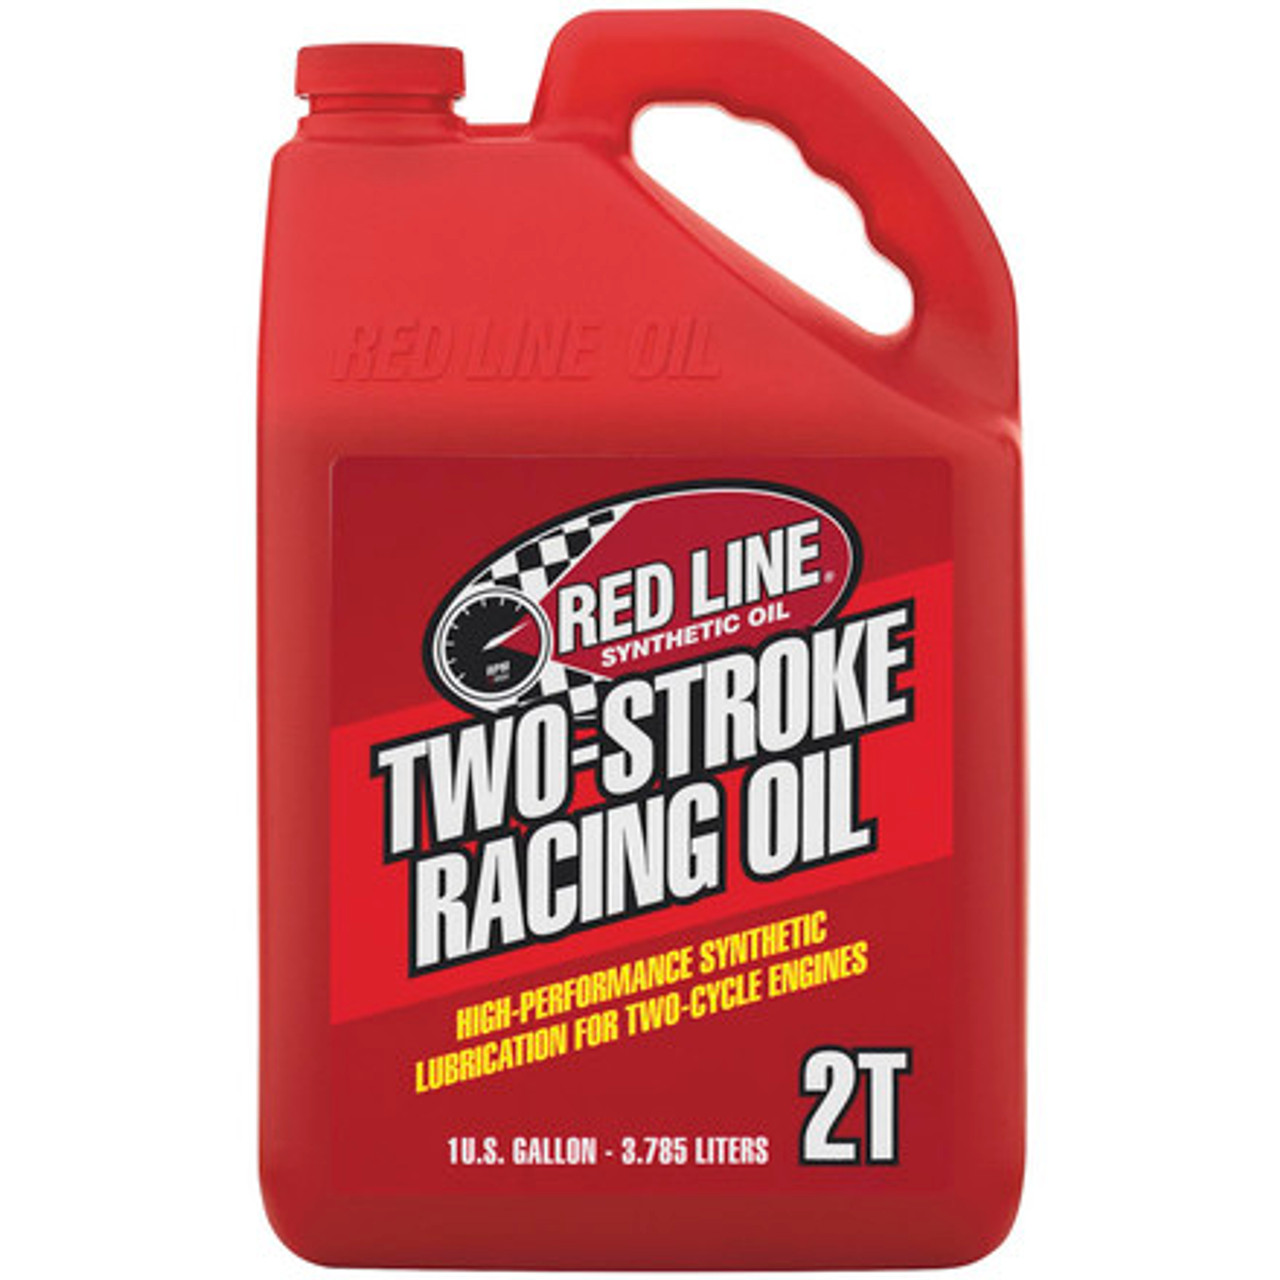 Red Line Two-Stroke Racing Oil, 1 gallon